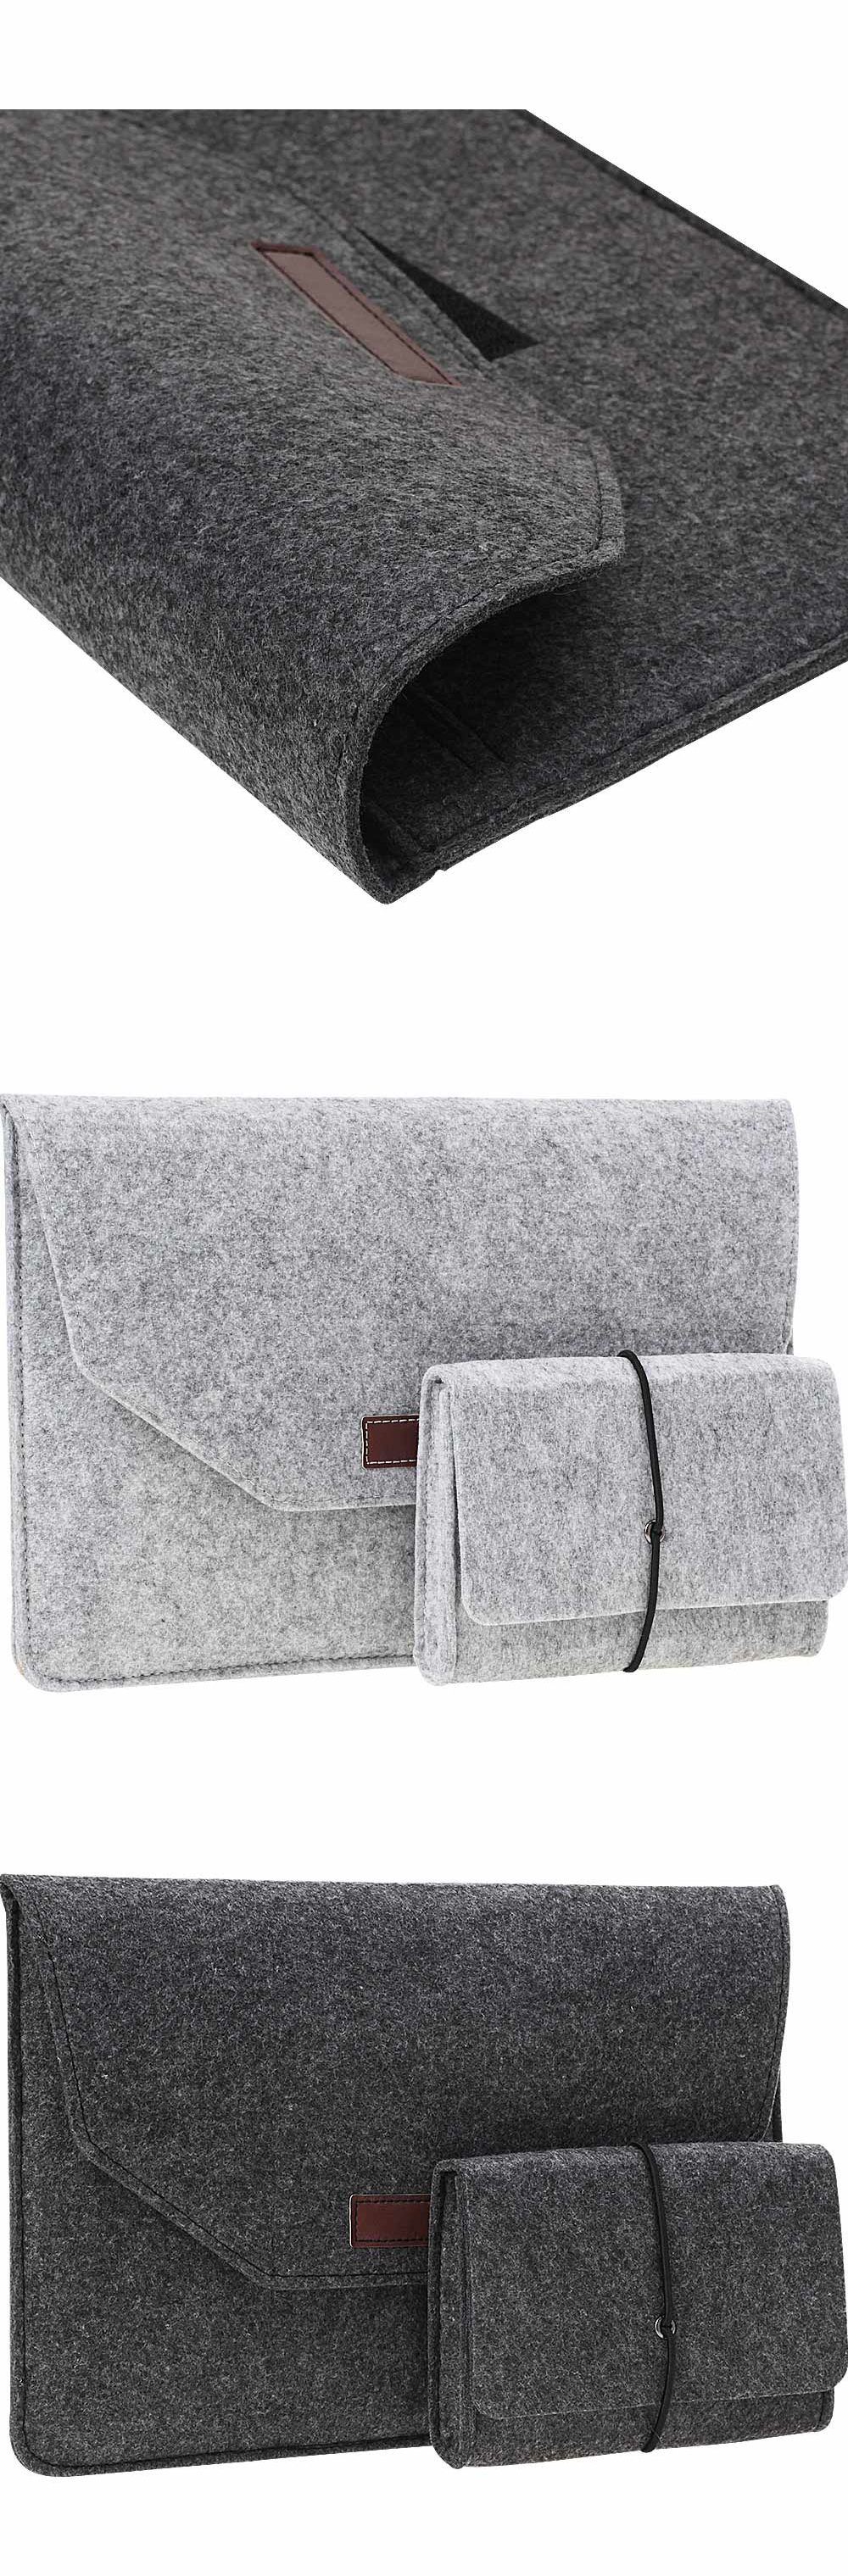 Soft For Macbook Air 13 Retina 13 Laptop Sleeve Wool Flet Case For Macbook Retina Pro 12 13 15 Touch Bar Laptop Case Mouse Bag  (5)